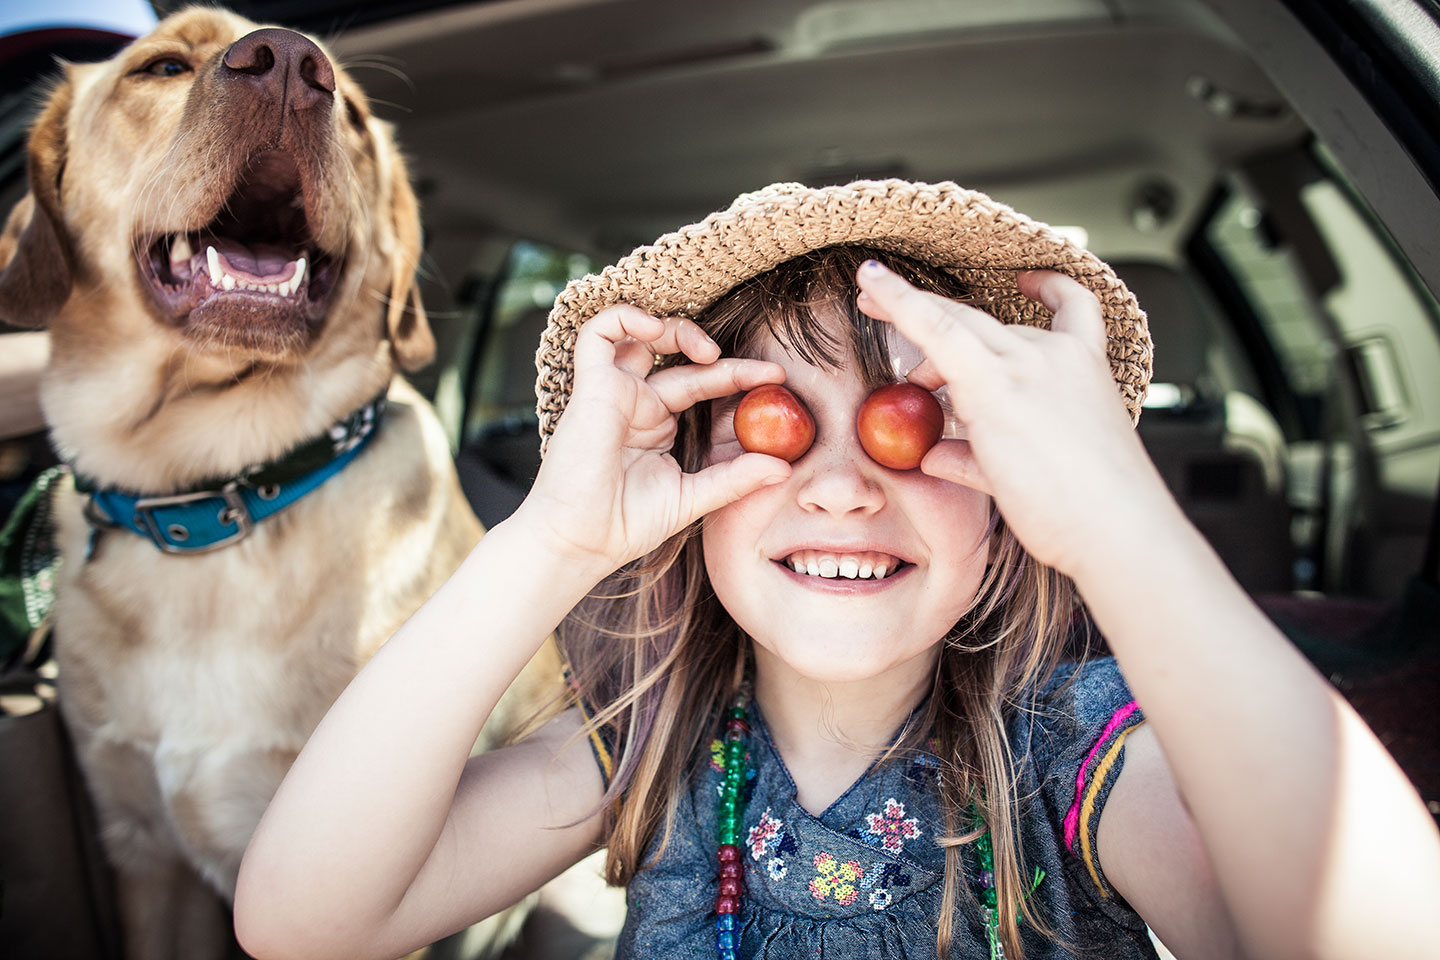 8 Great Ideas for Packing Healthy Road-Trip Snacks Kids Will Love